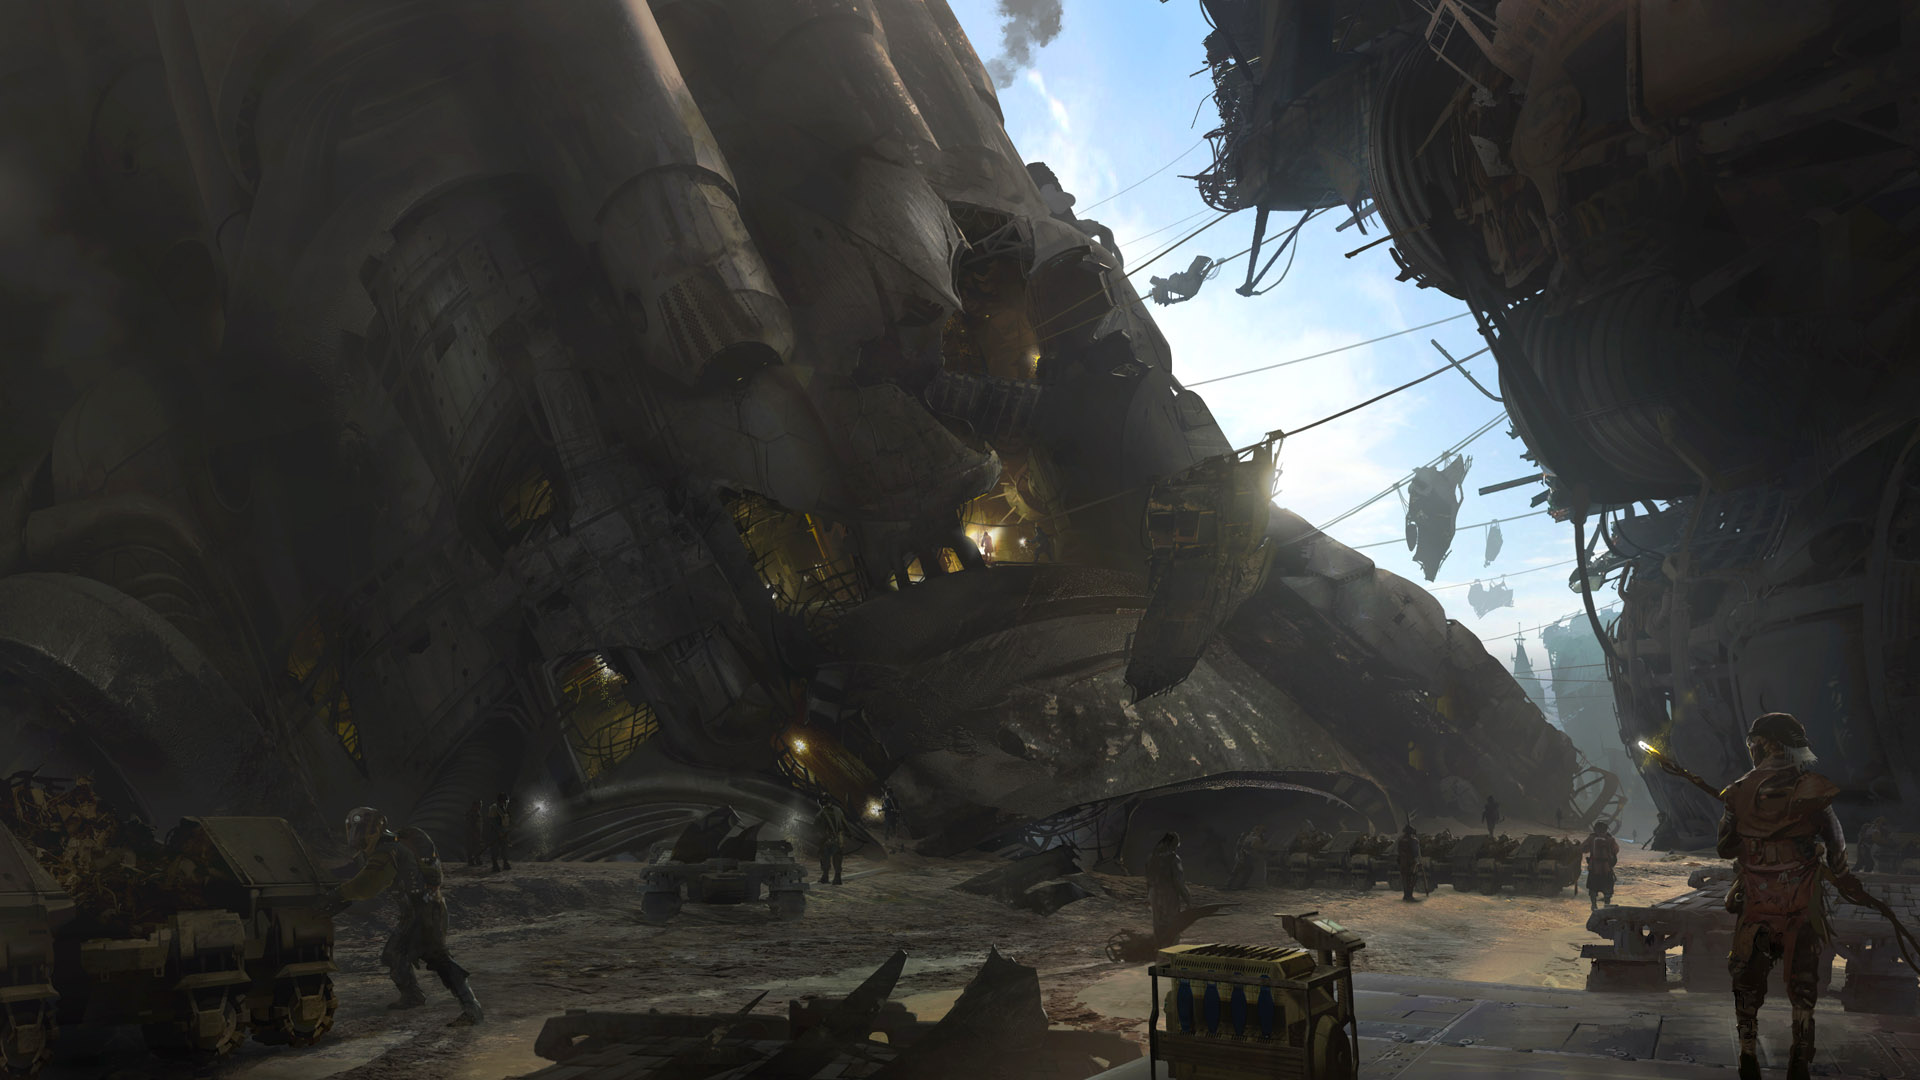 Titanfall Artwork by Bruno Werneck